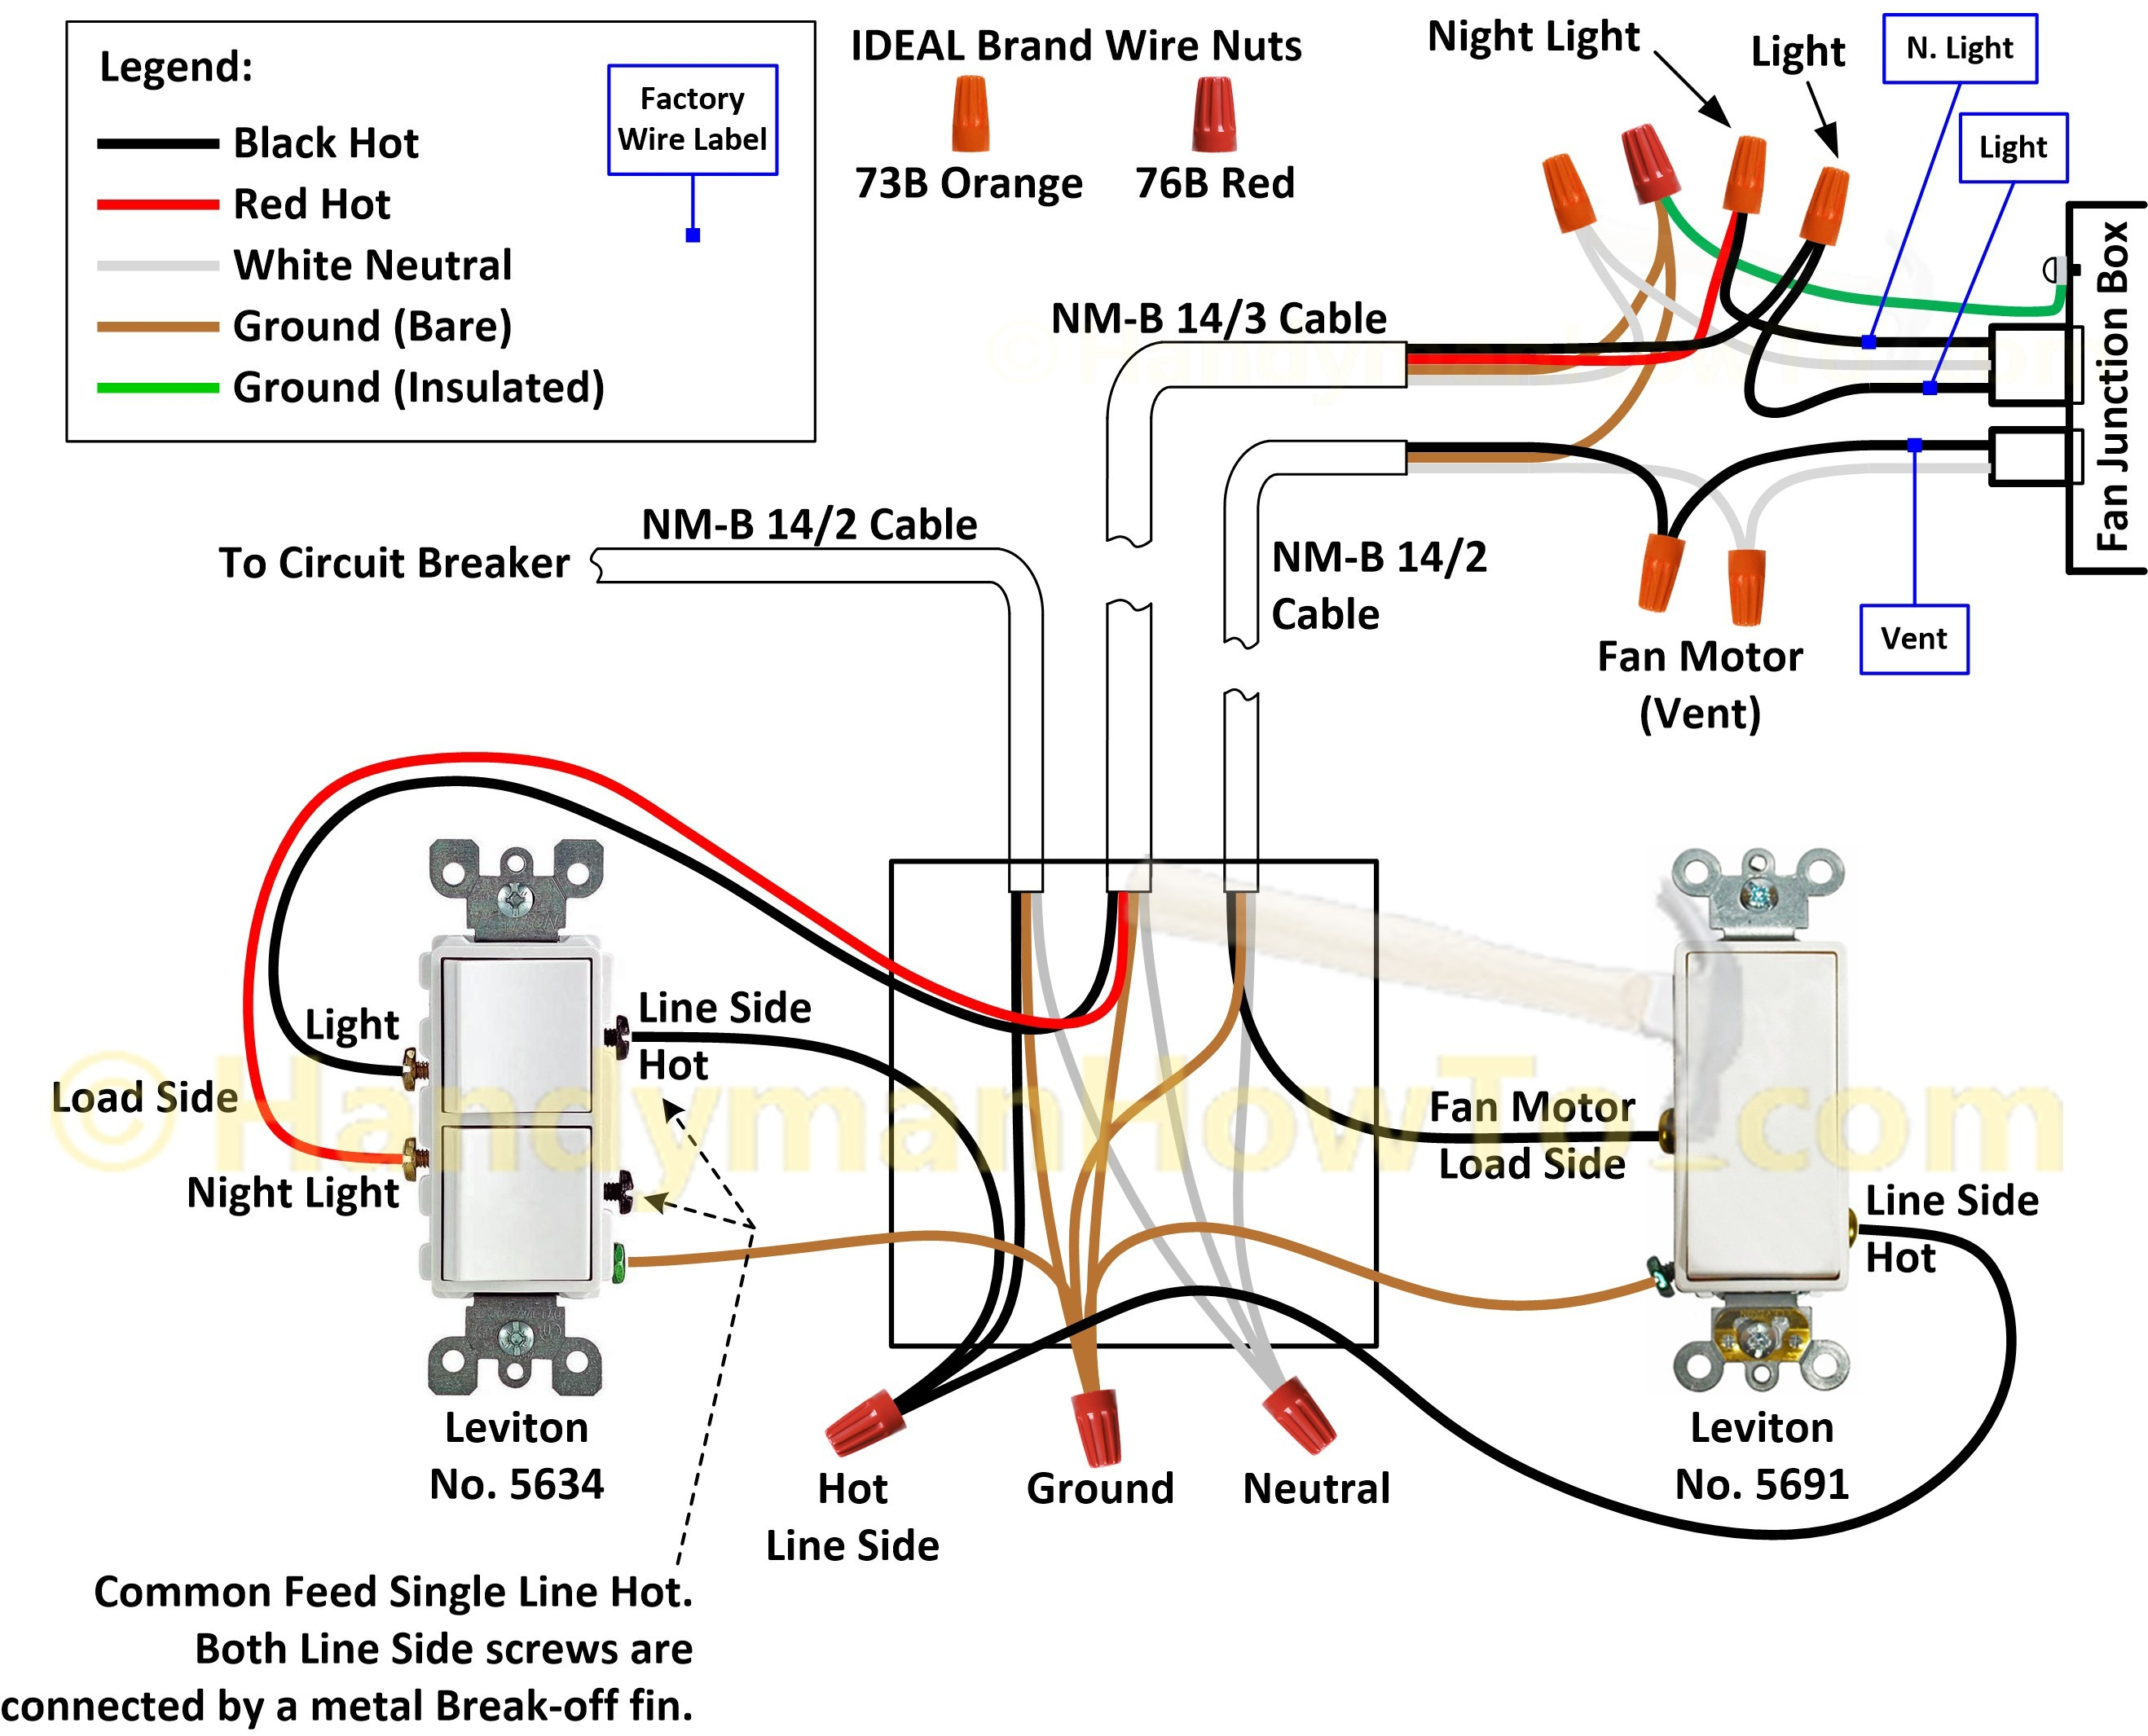 Mobile Home Light Switch Wiring Diagram Gallery | Wiring Diagram Sample